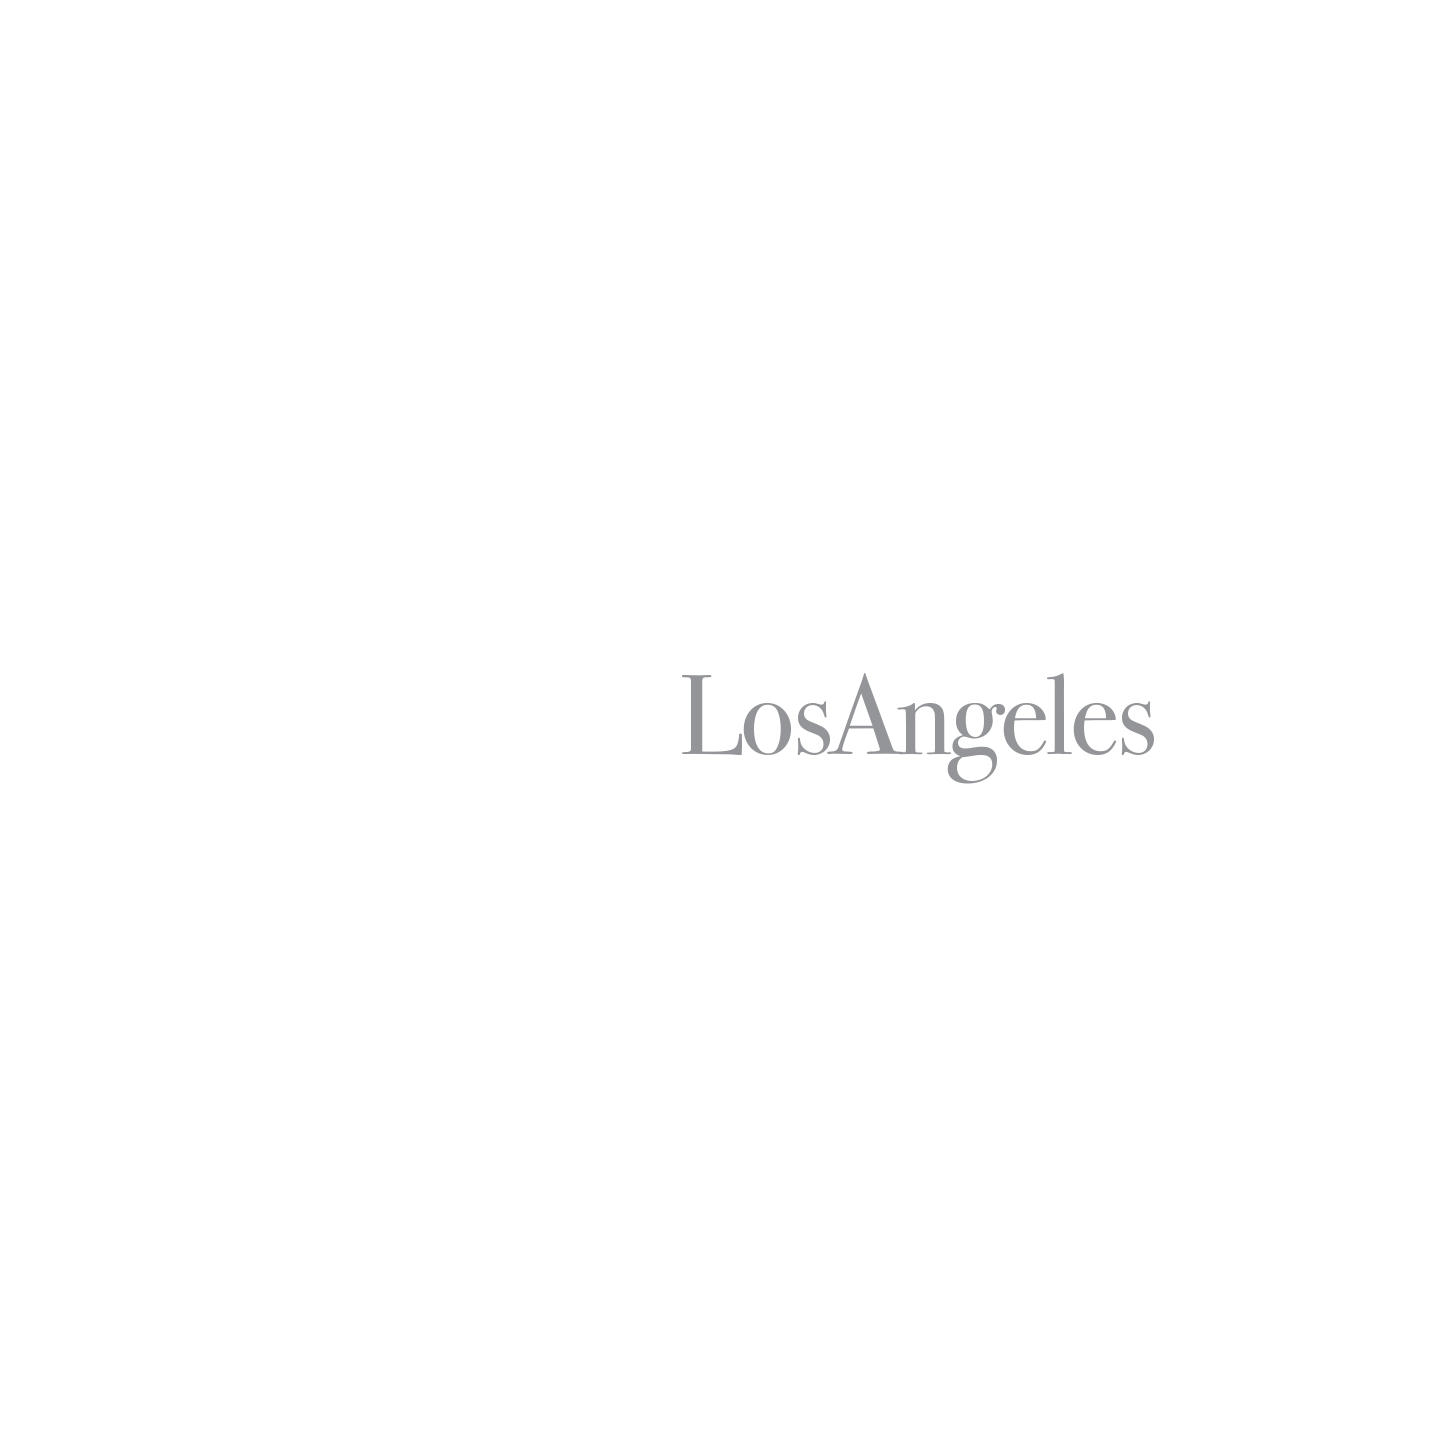 Jet Center Los Angeles